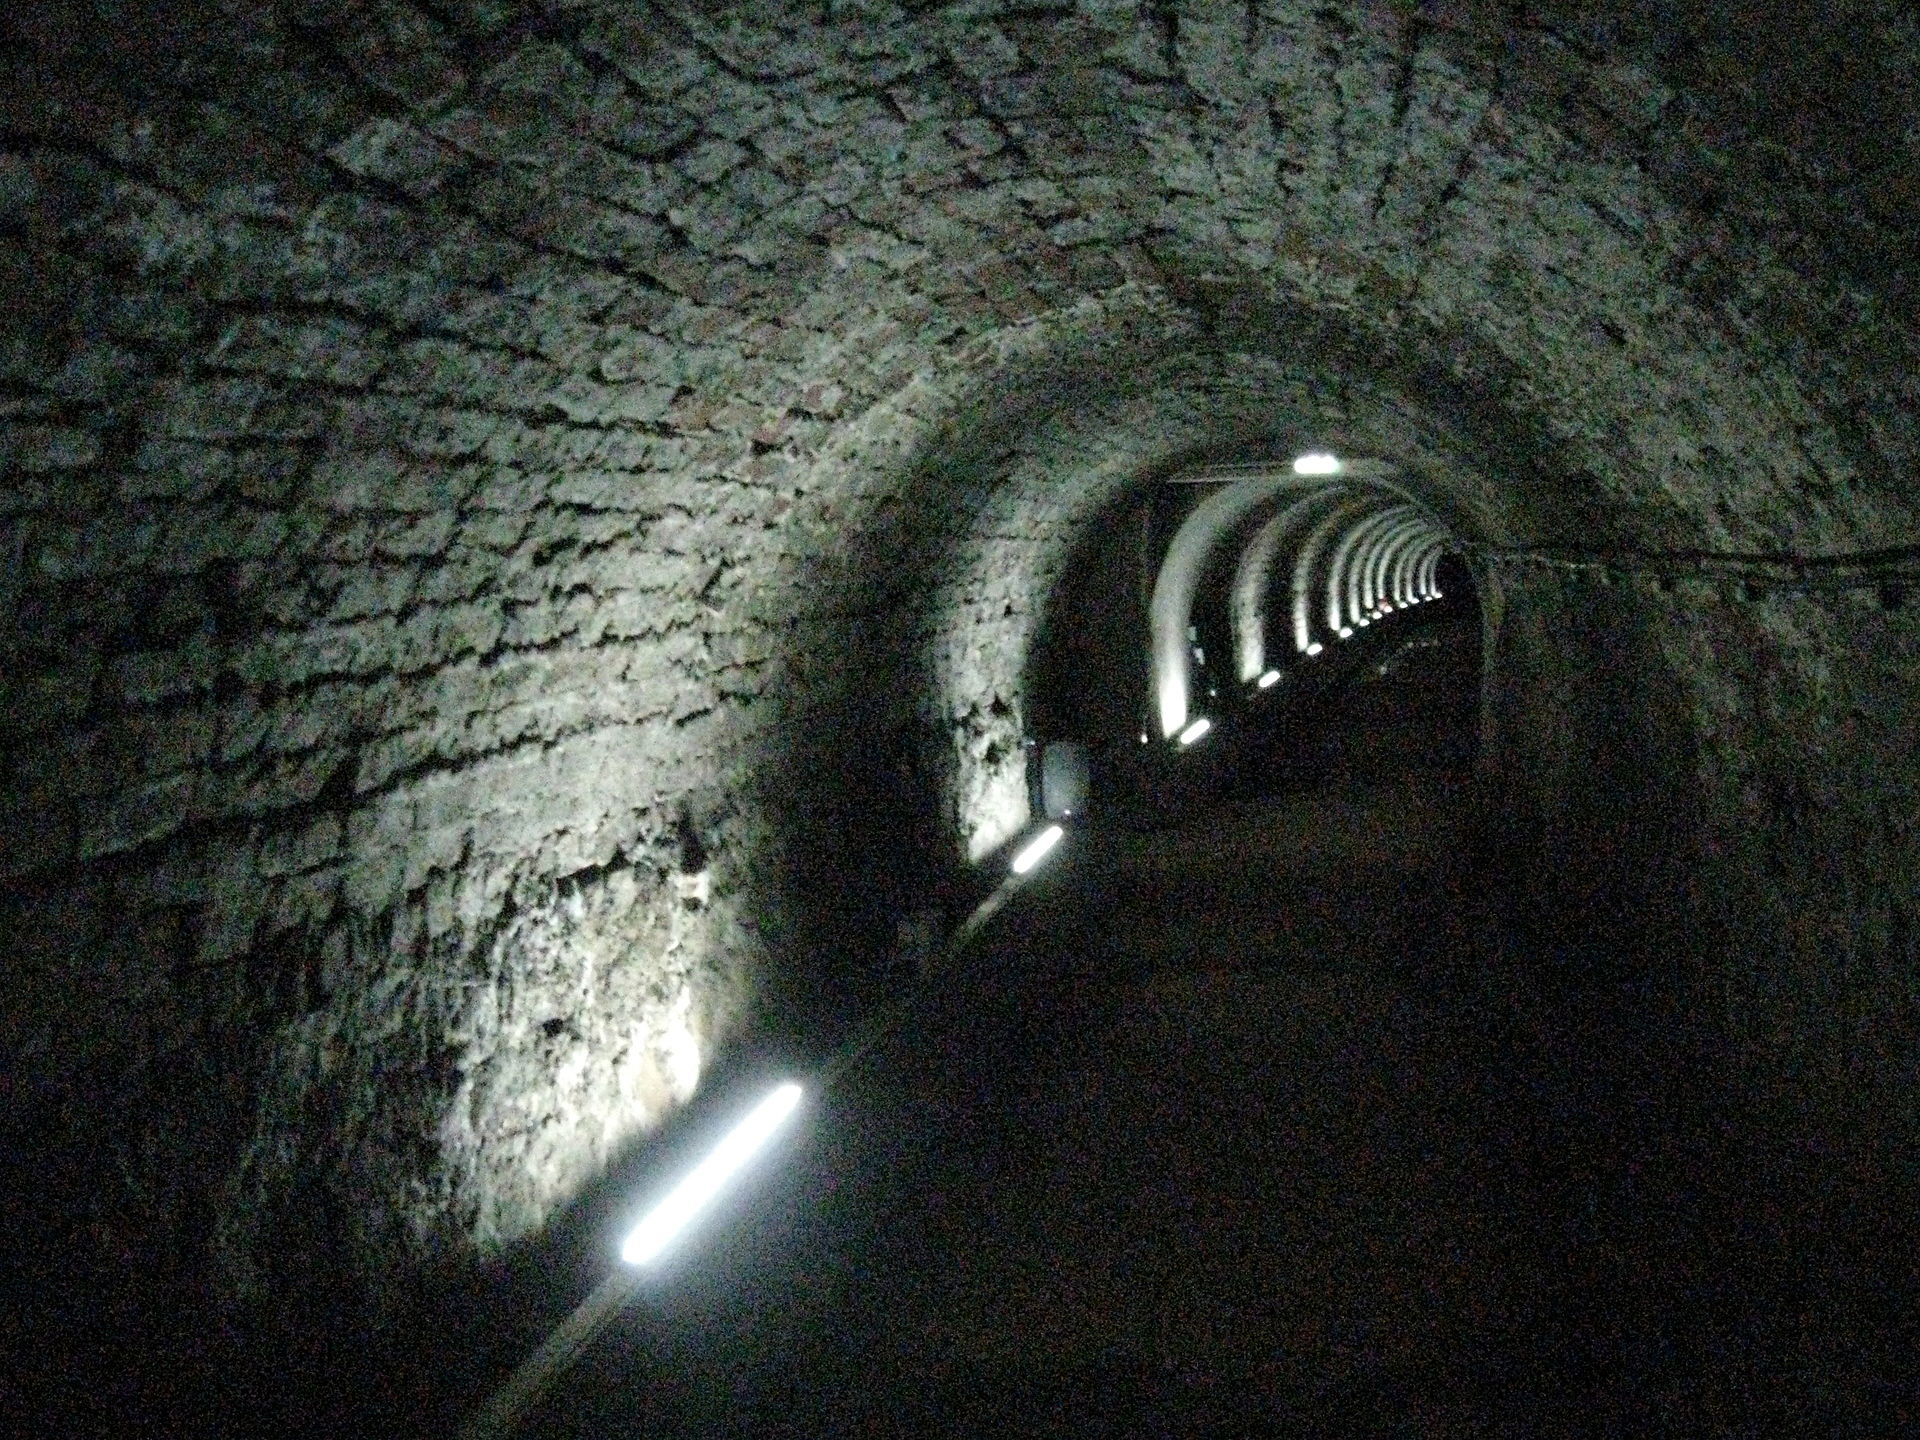 Photograph of Victoria Tunnel